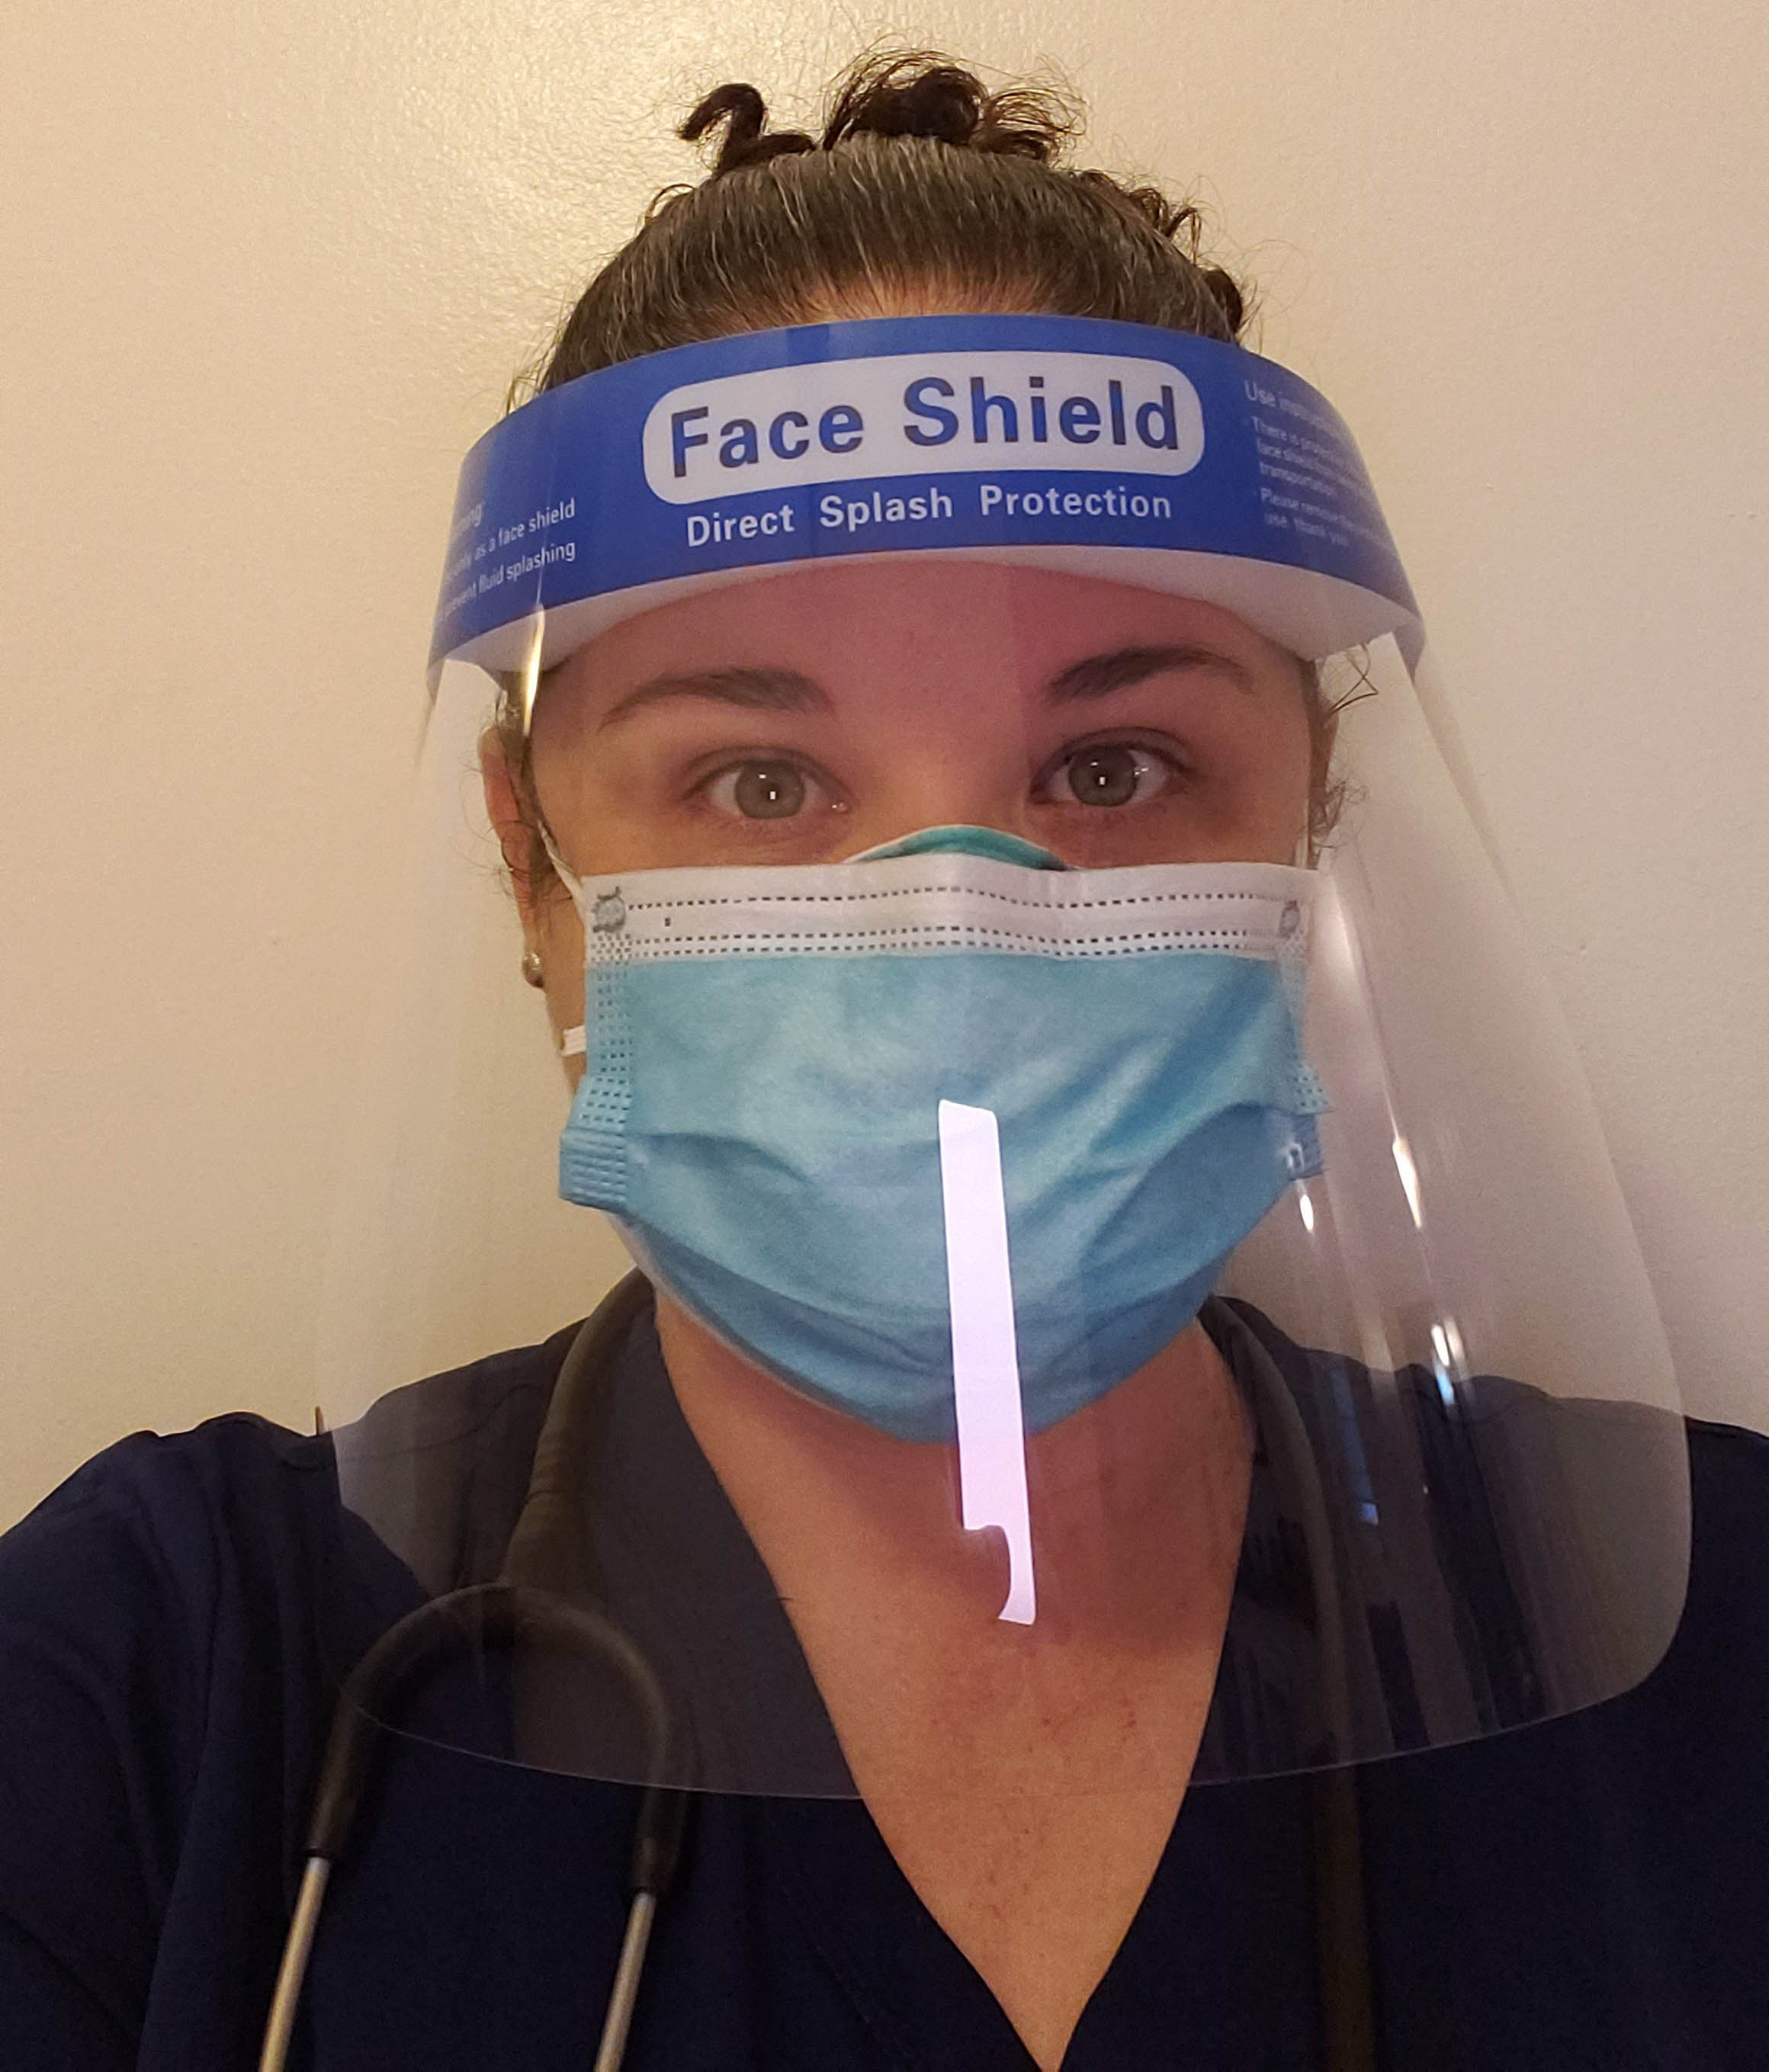 A nurse is seeing wearing a face shield and mask